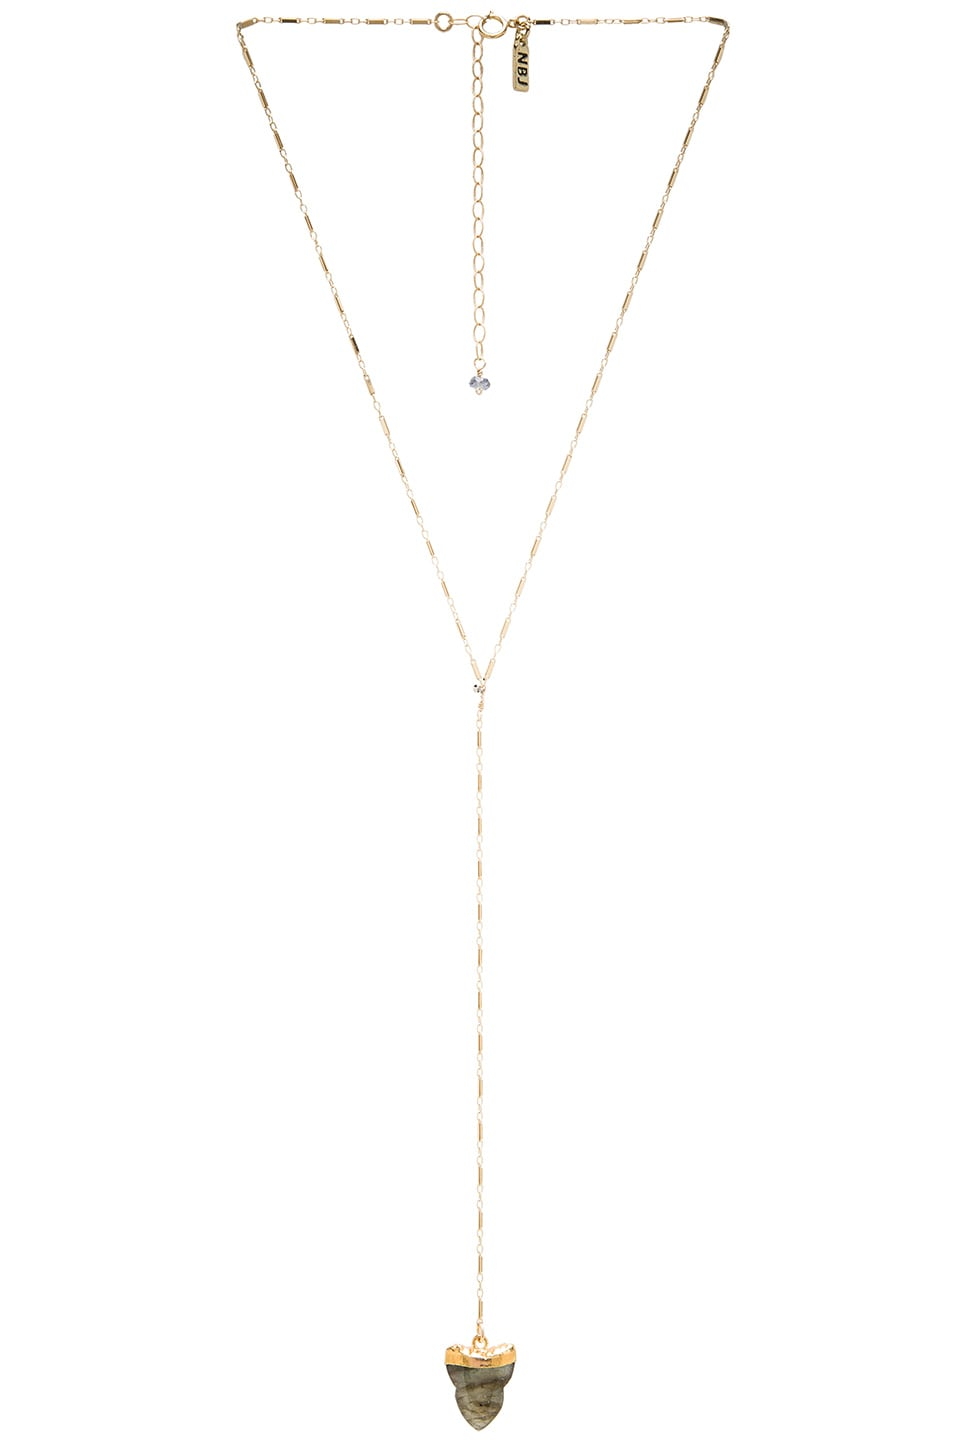 Natalie B Jewelry Deep Sea Lariat Necklace in Gold